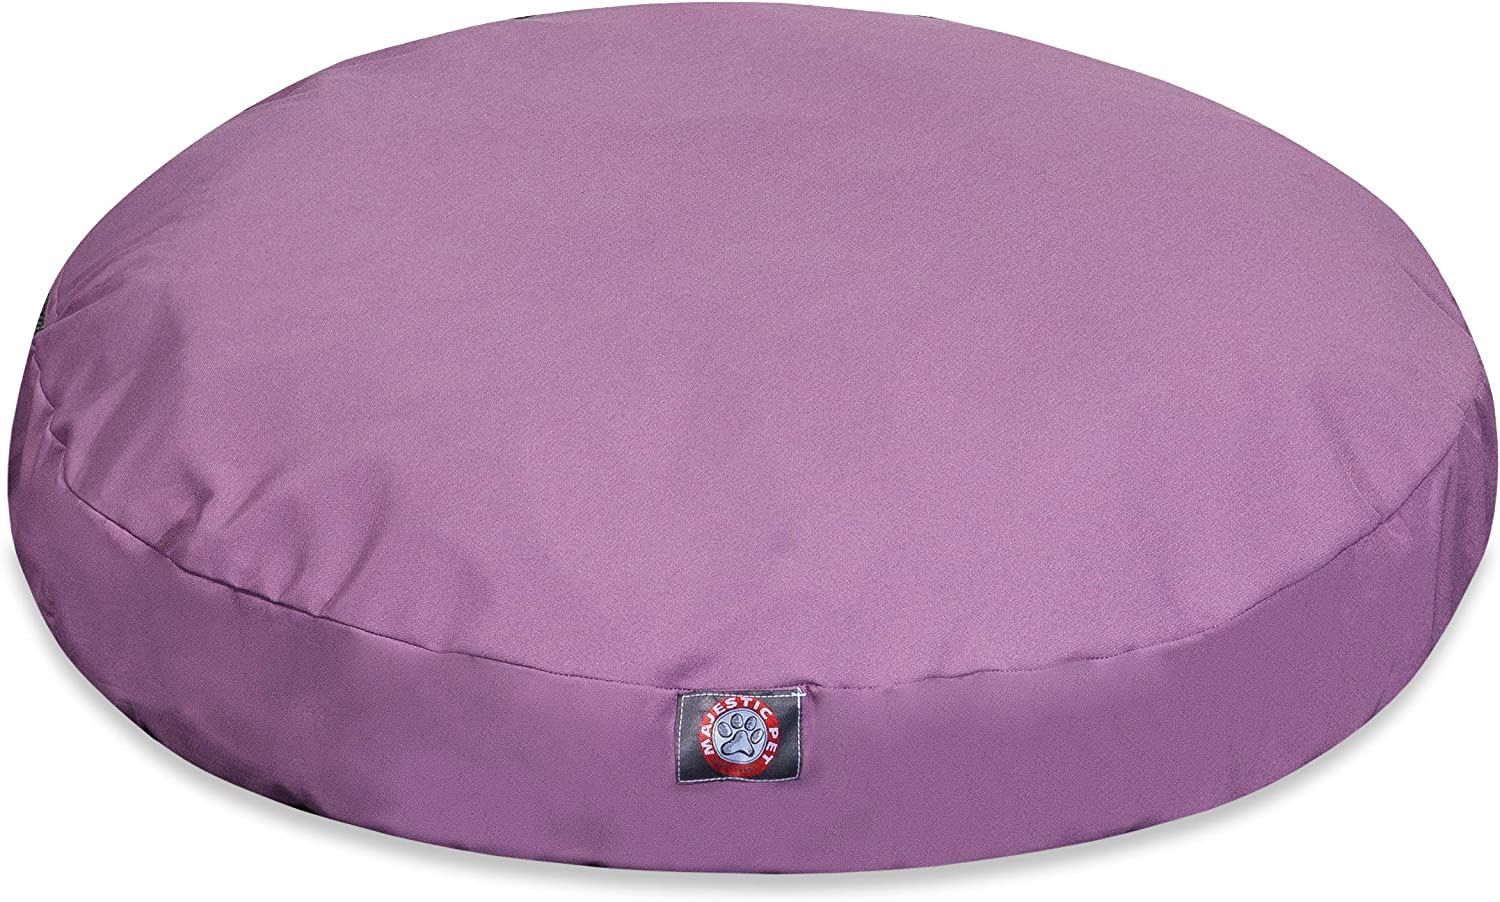 Majestic Pet Solid Lilac Small Round Pet Bed